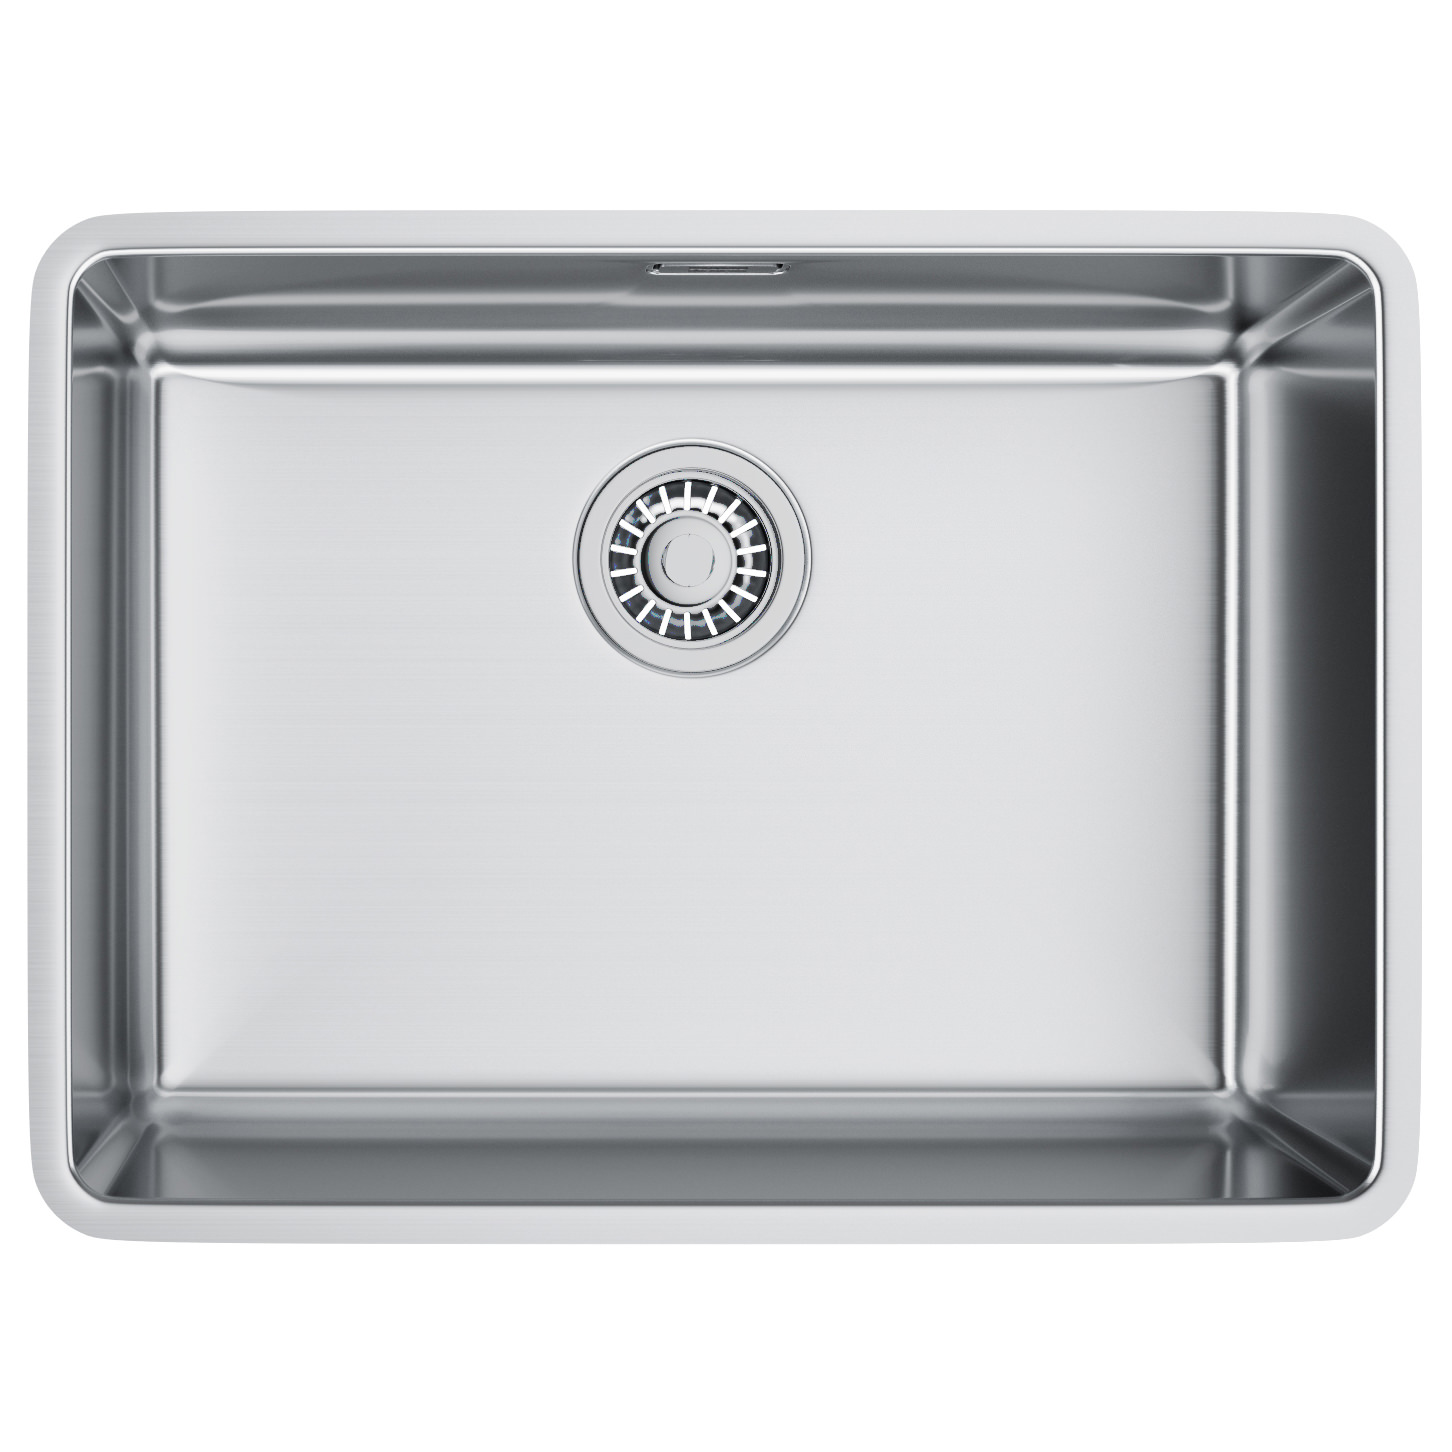 Franke Ss Sinks : Franke Kubus KBX 110 55 Stainless Steel Undermount Kitchen Sink ...